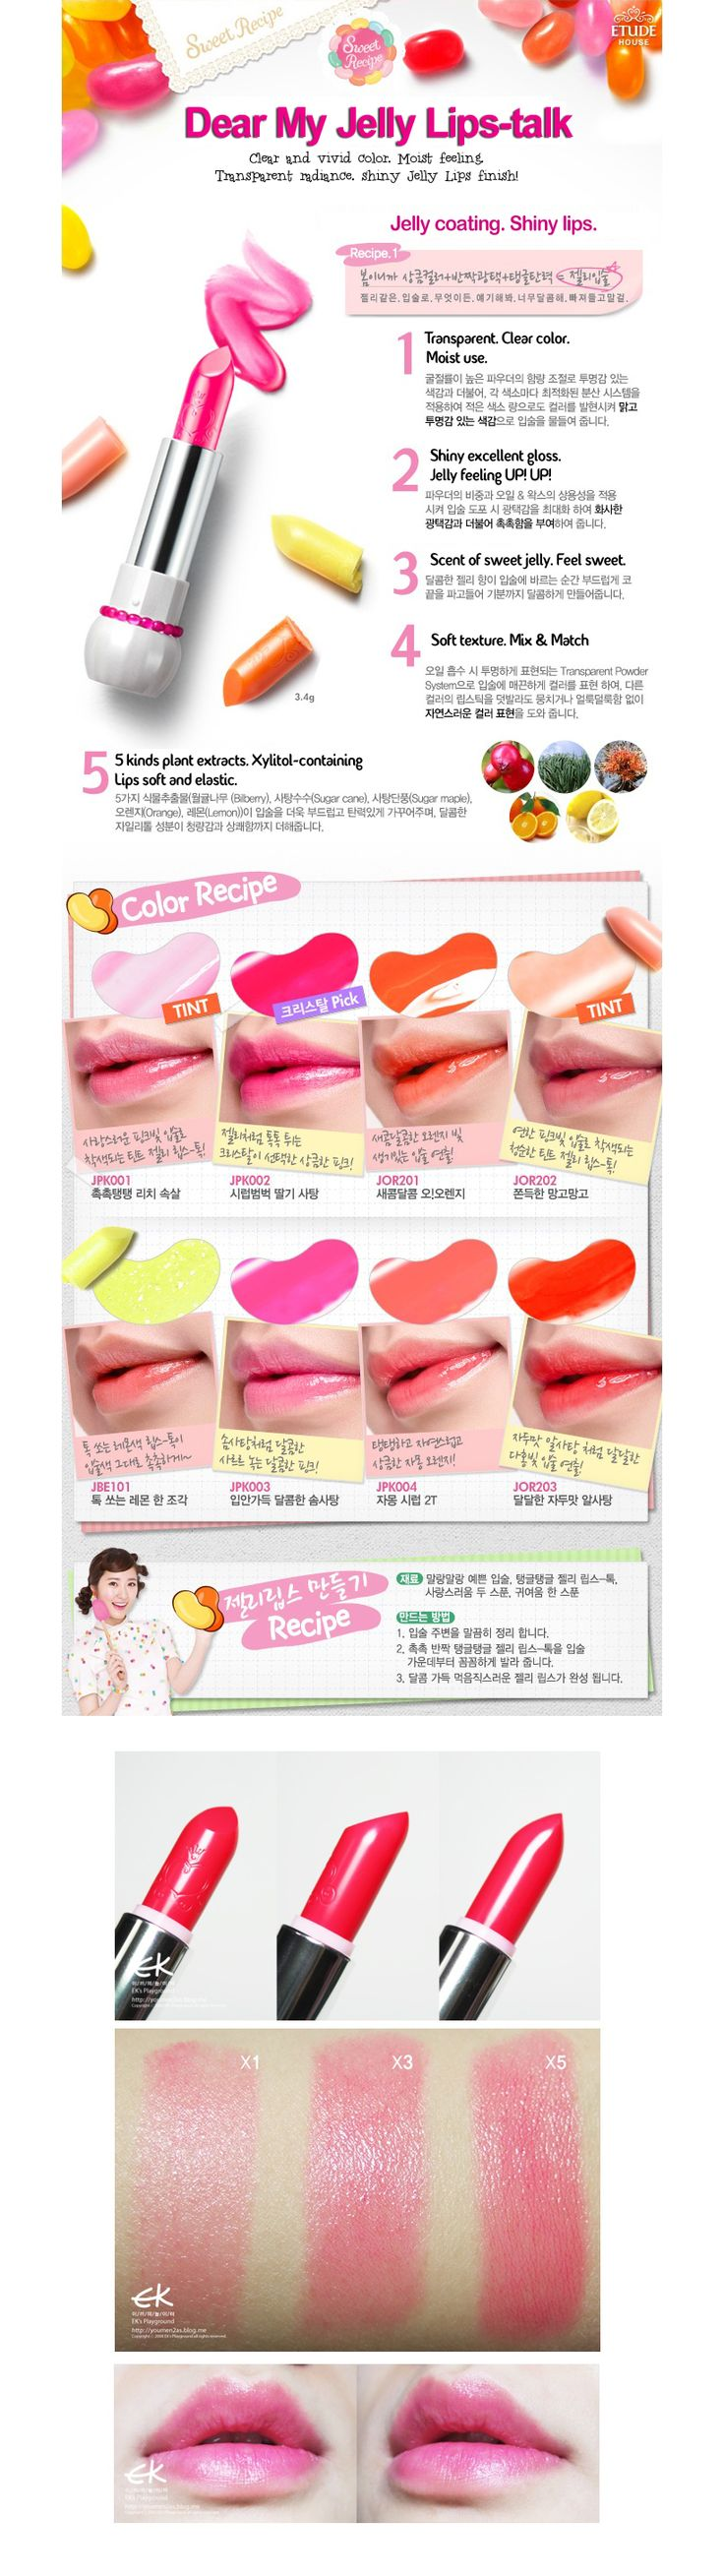 Etude House Korea Jakarta: Etude House Dear My Jelly Lips 3.4g